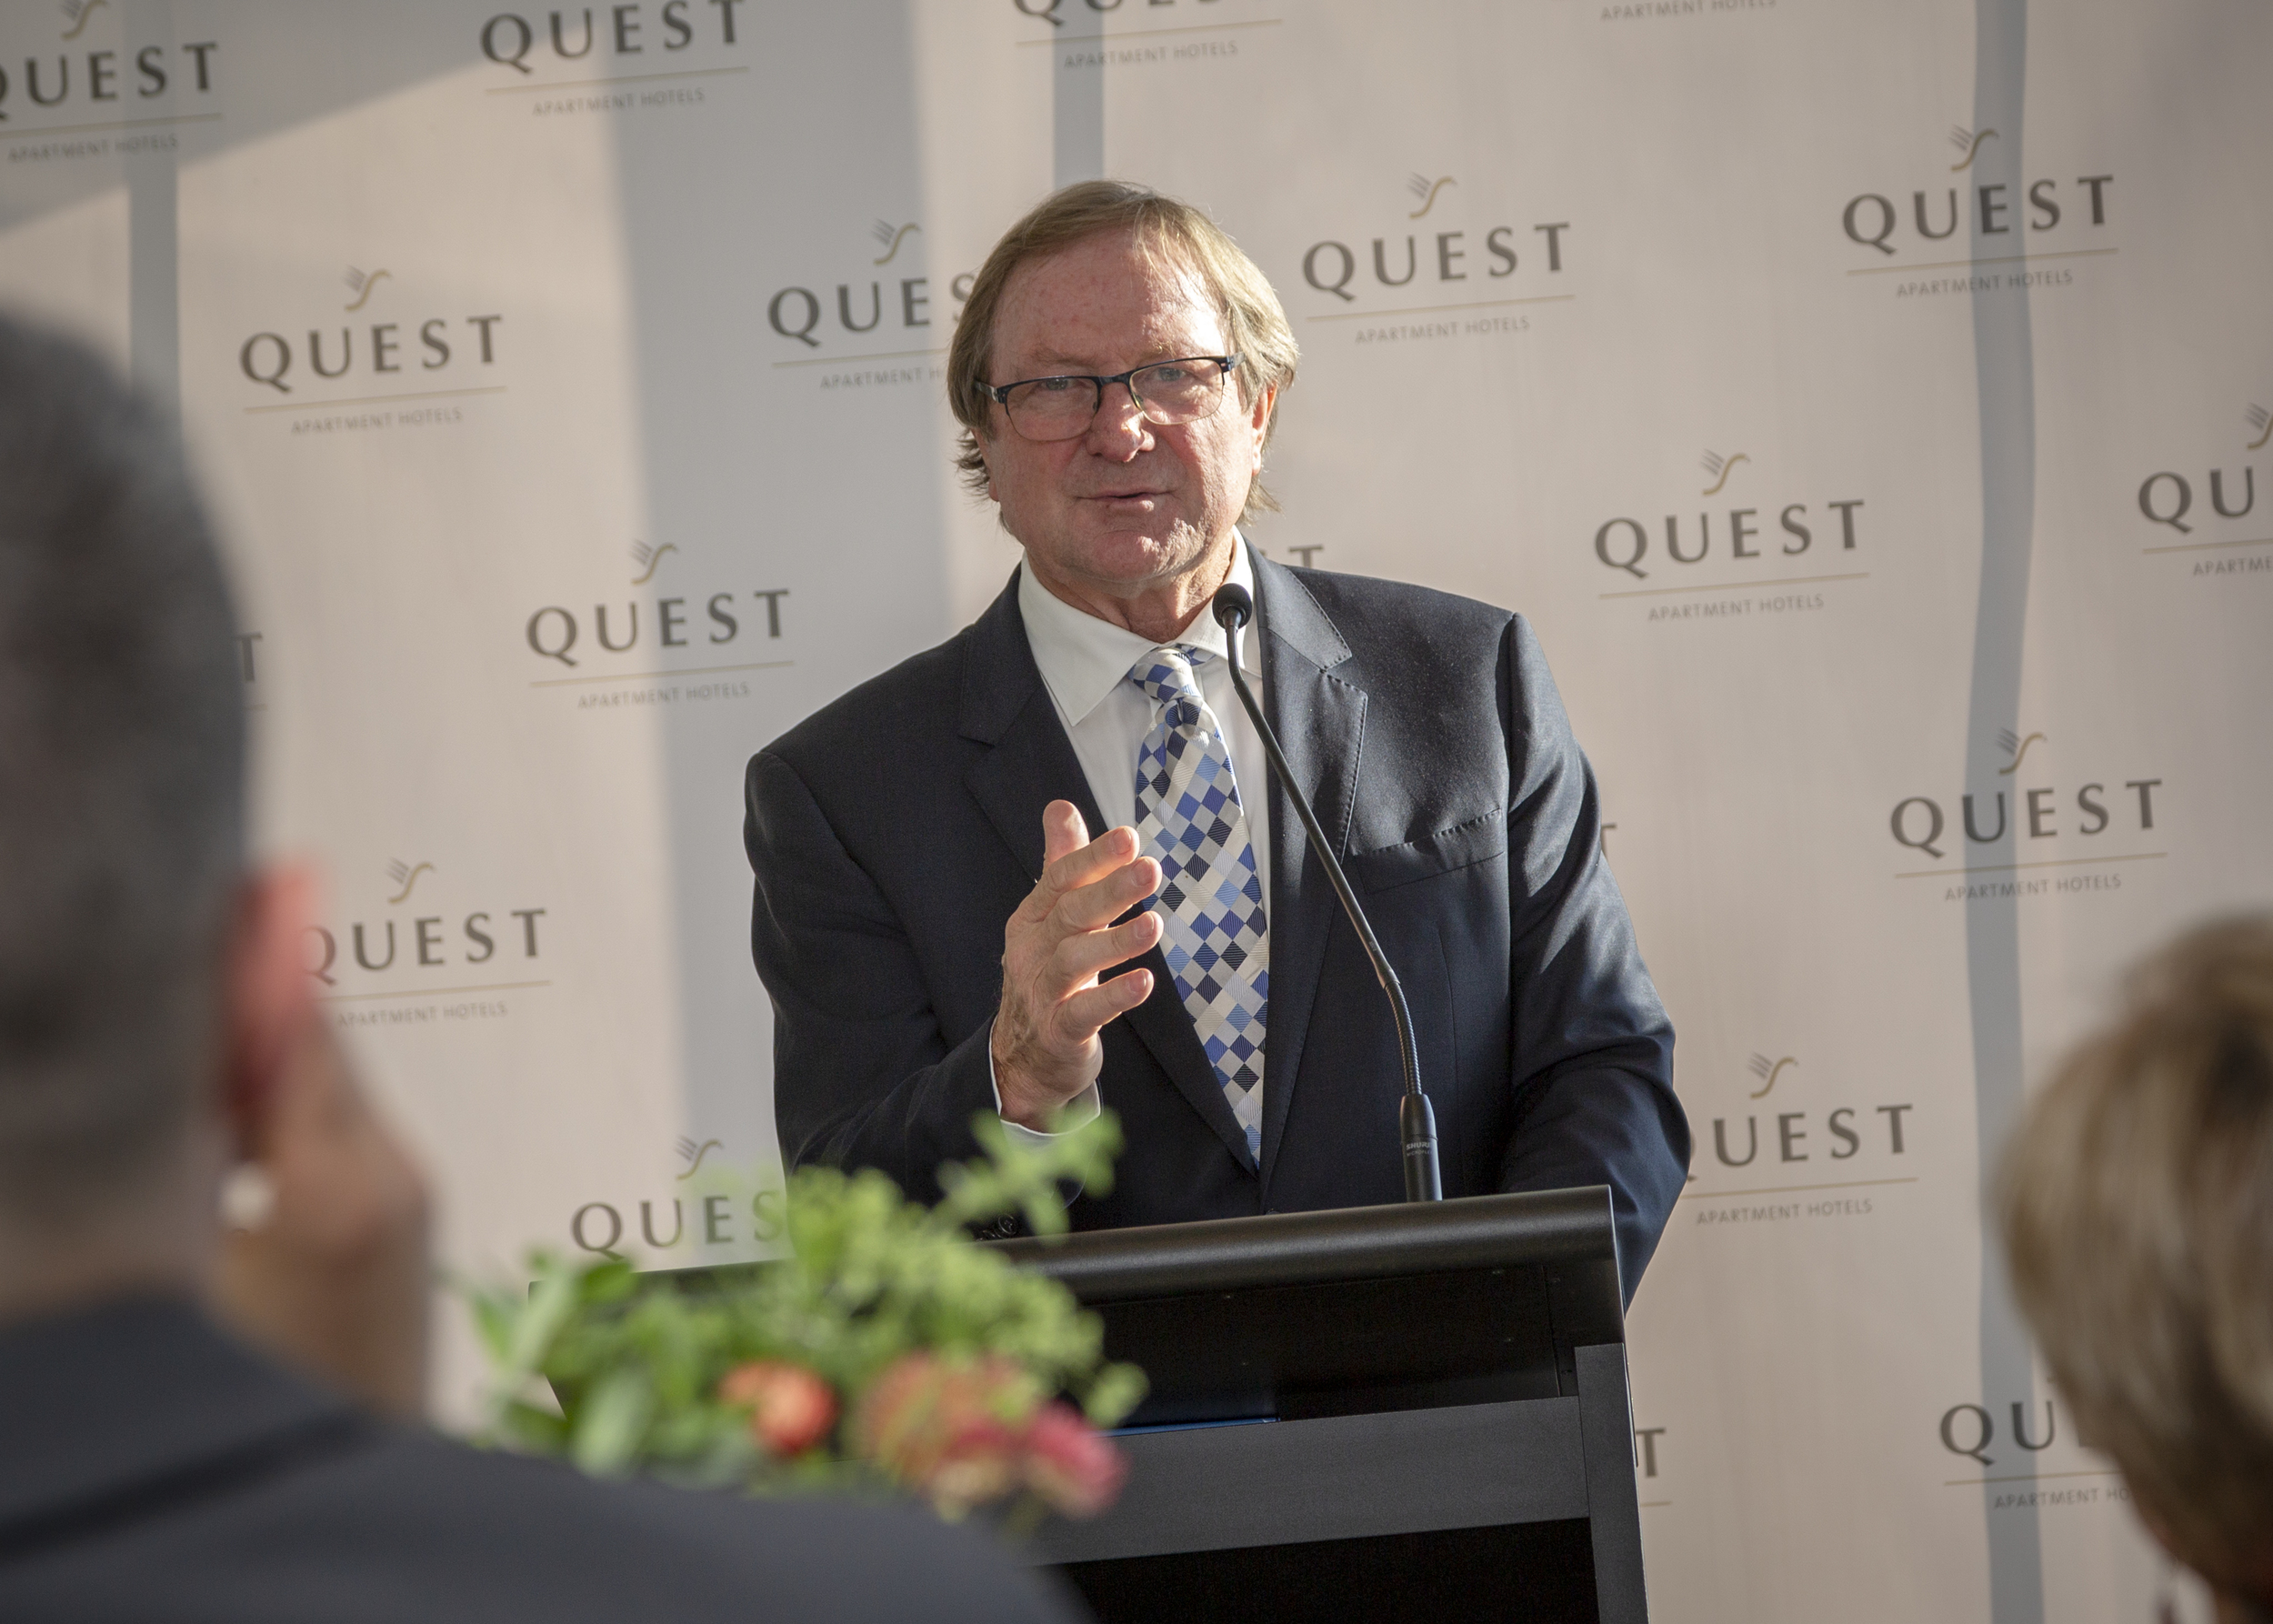 Quest Epping Opening Event